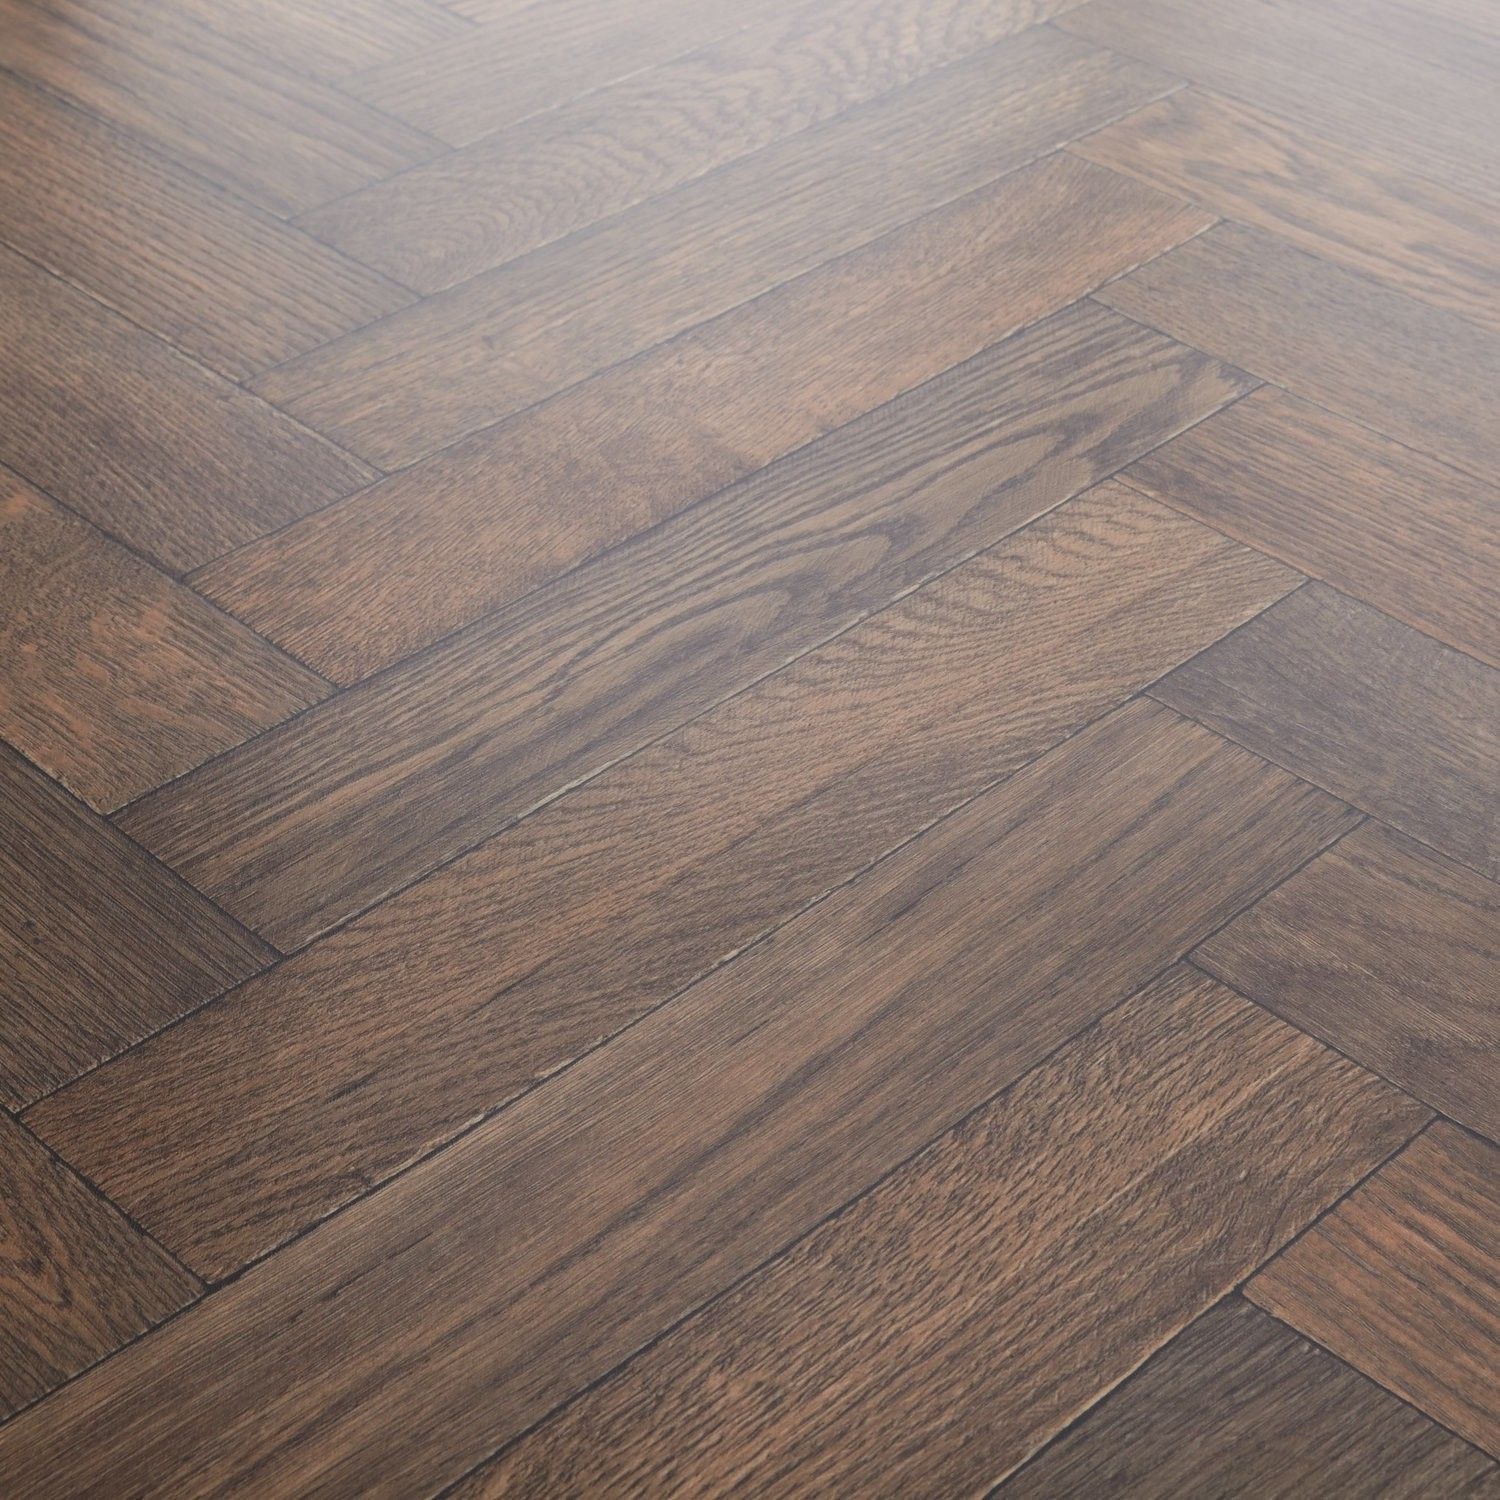 Rhino champion valley antique oak parquet vinyl flooring floor pinterest - Parquet vinyl castorama ...